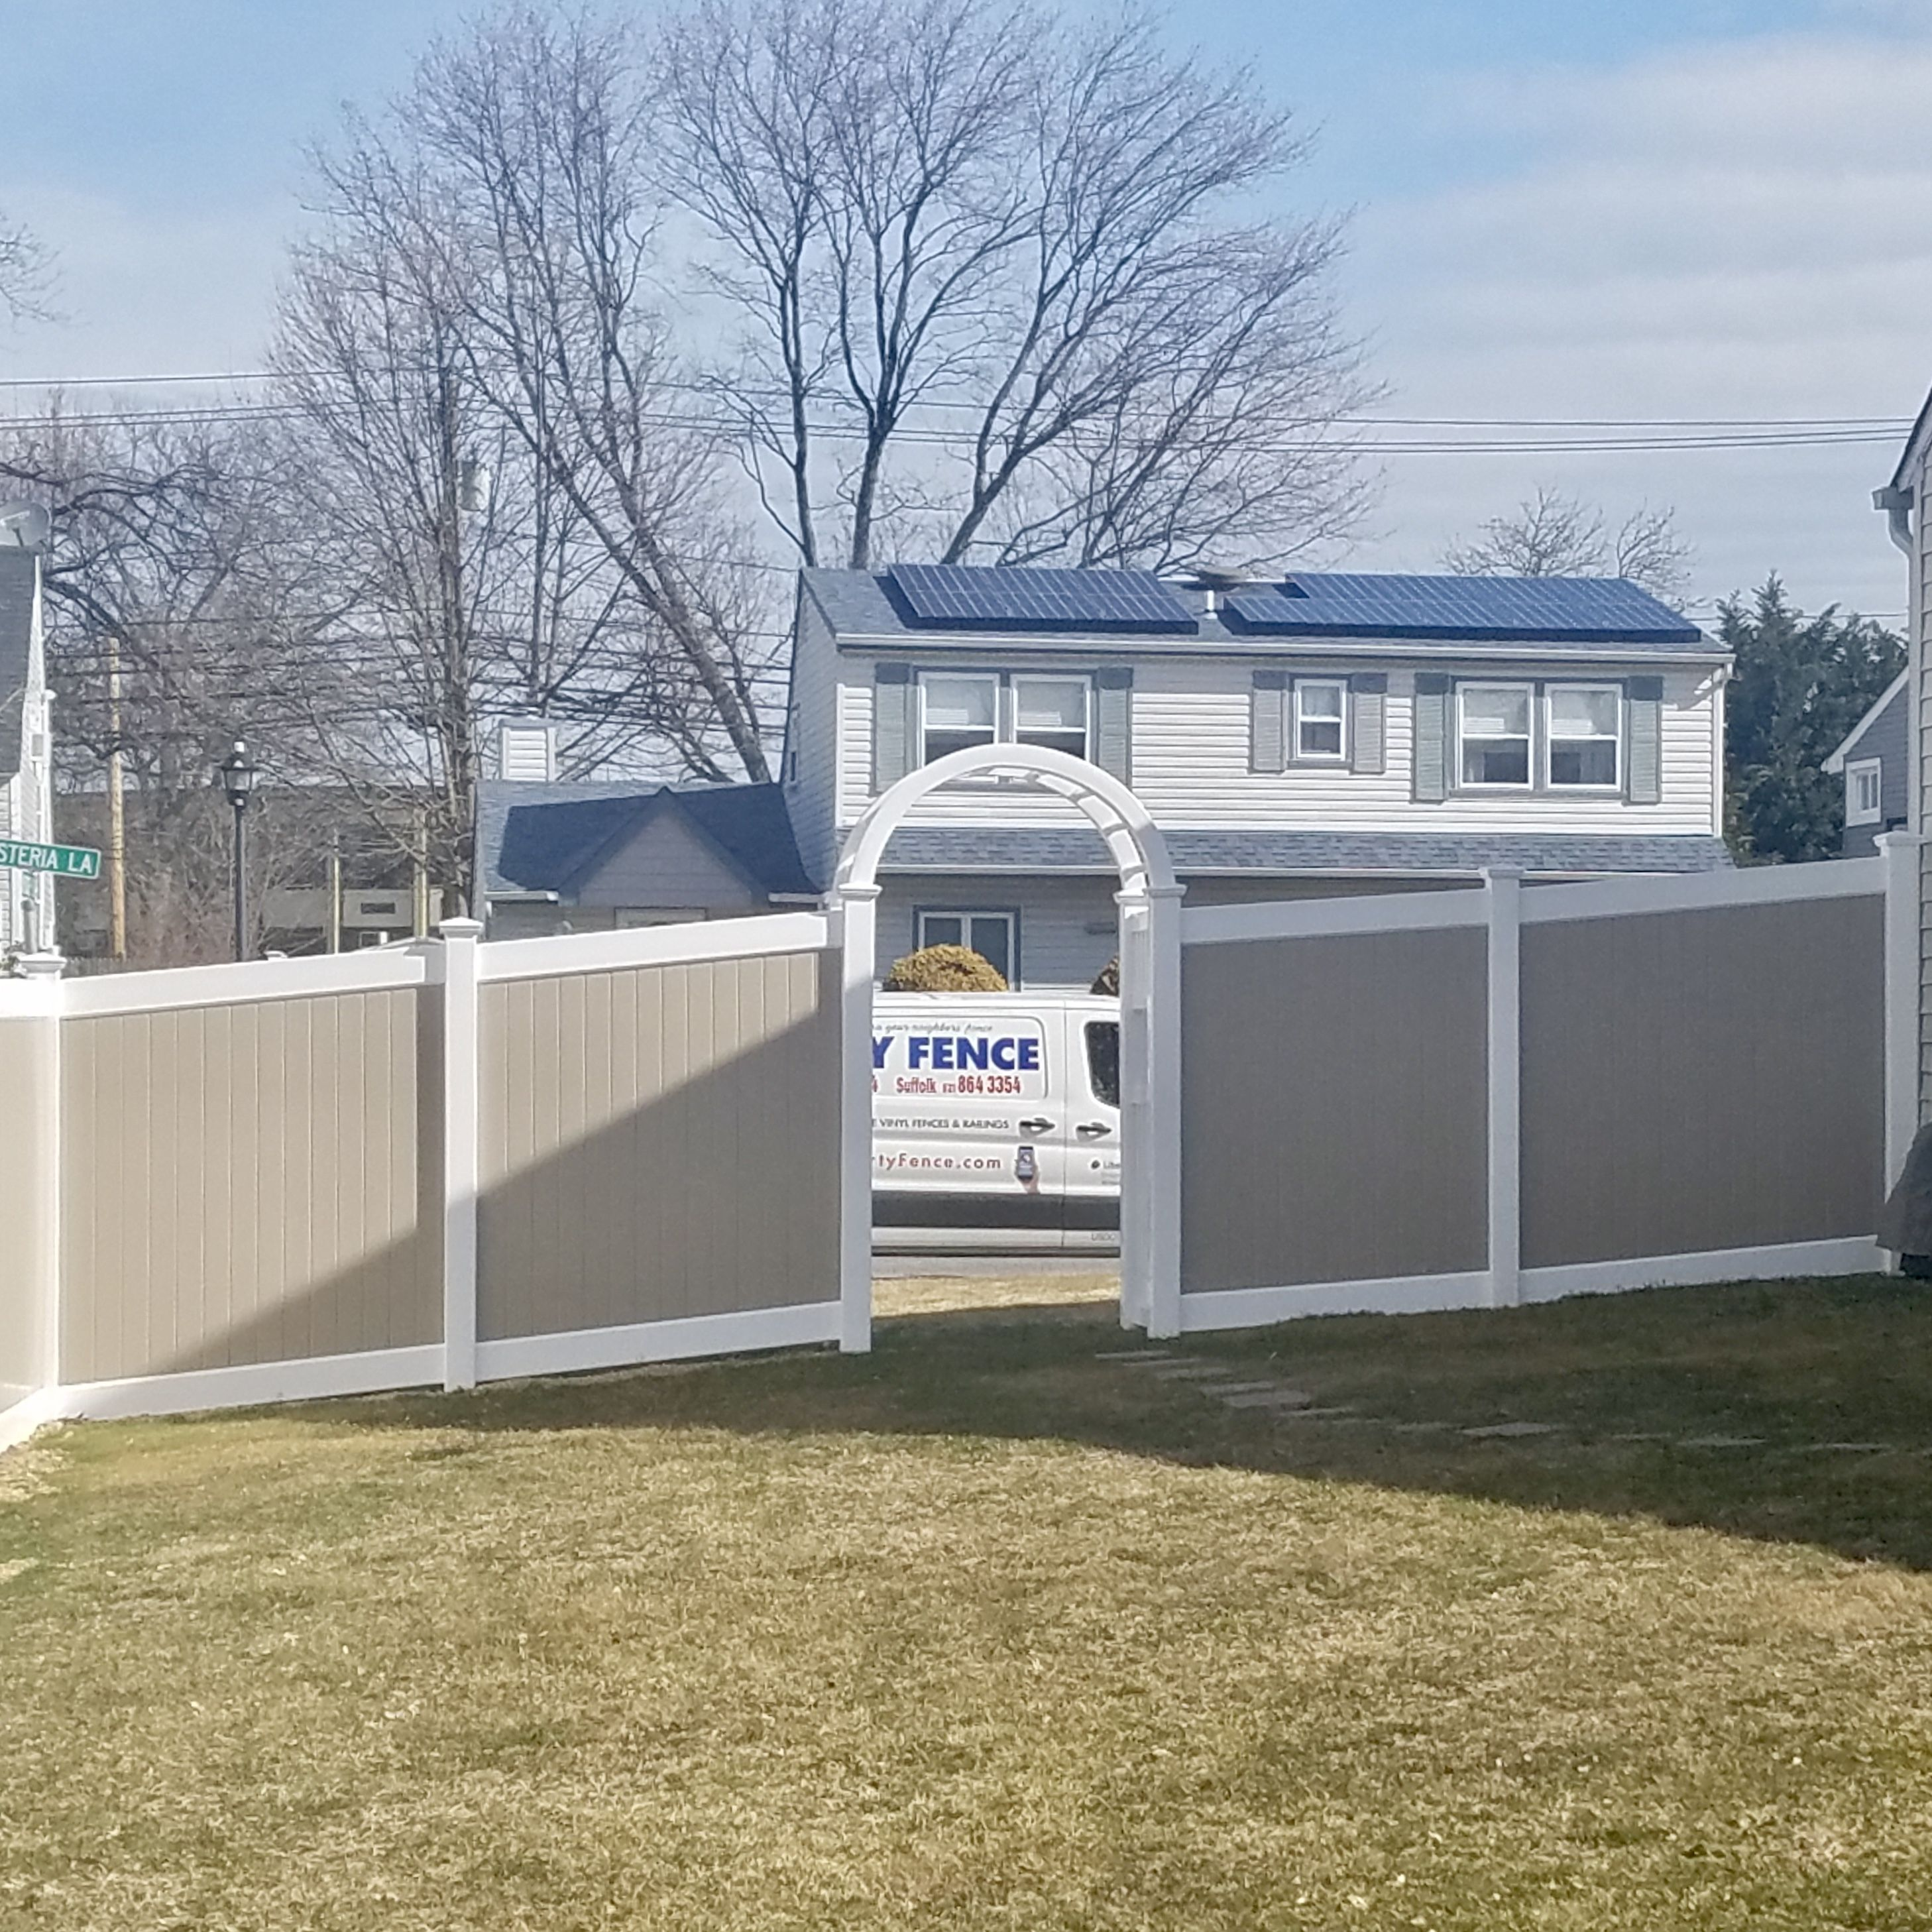 6 Two Tone Vinyl Fence Khaki Panels And White Frame And White 4 Wide Grand Arbor With Explorer Sides And Window In 2020 Gates And Railings Vinyl Gates Vinyl Fence